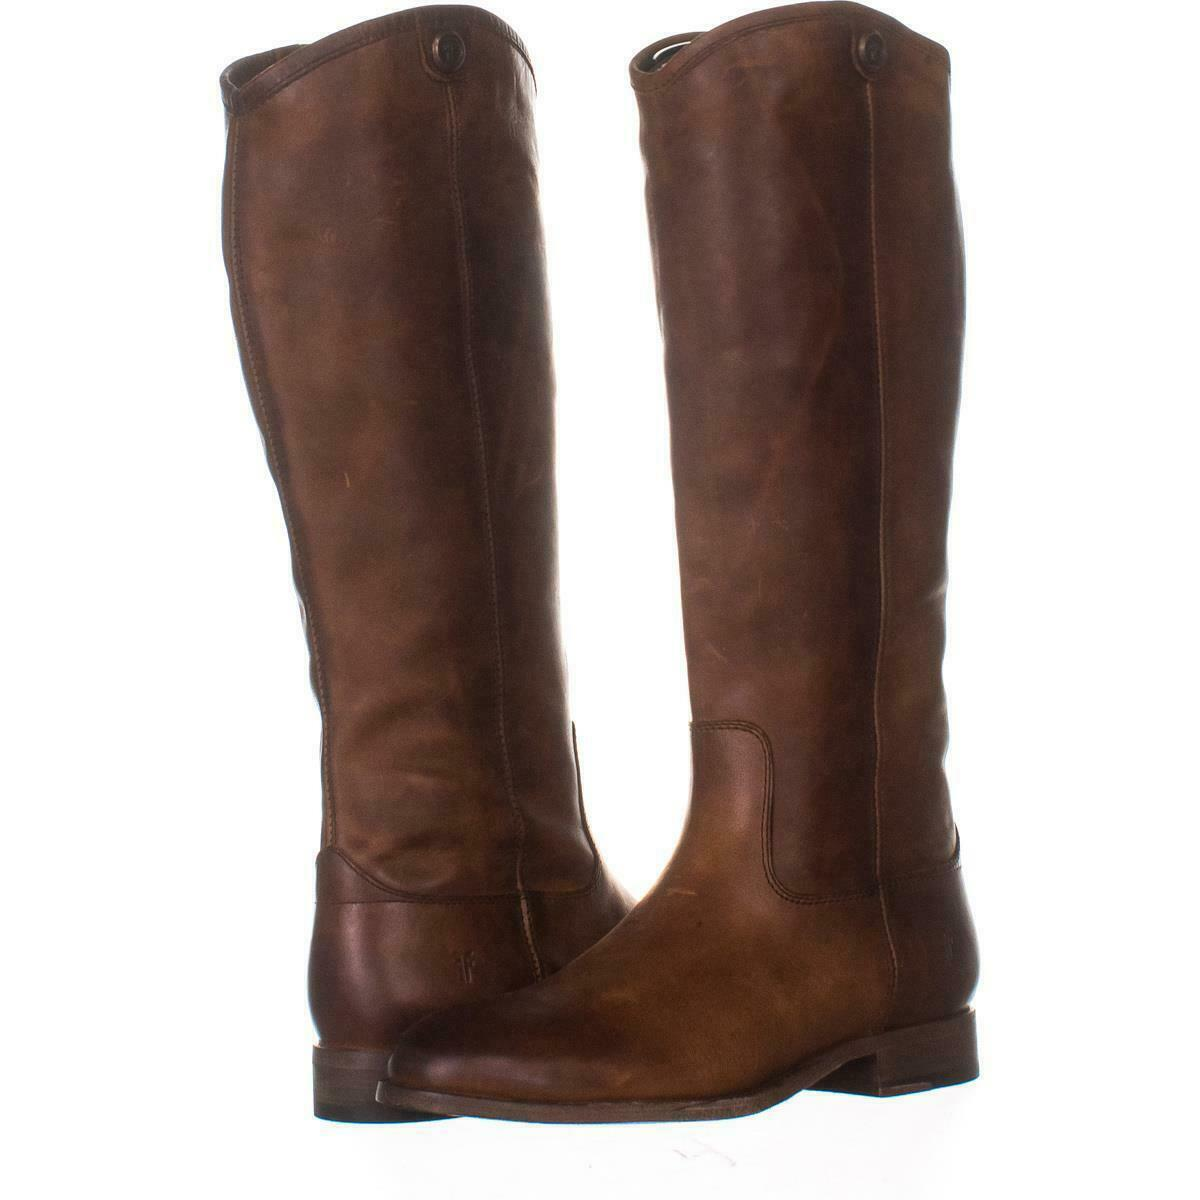 51a4bd4443a Frye Boot: 1 customer review and 521 listings